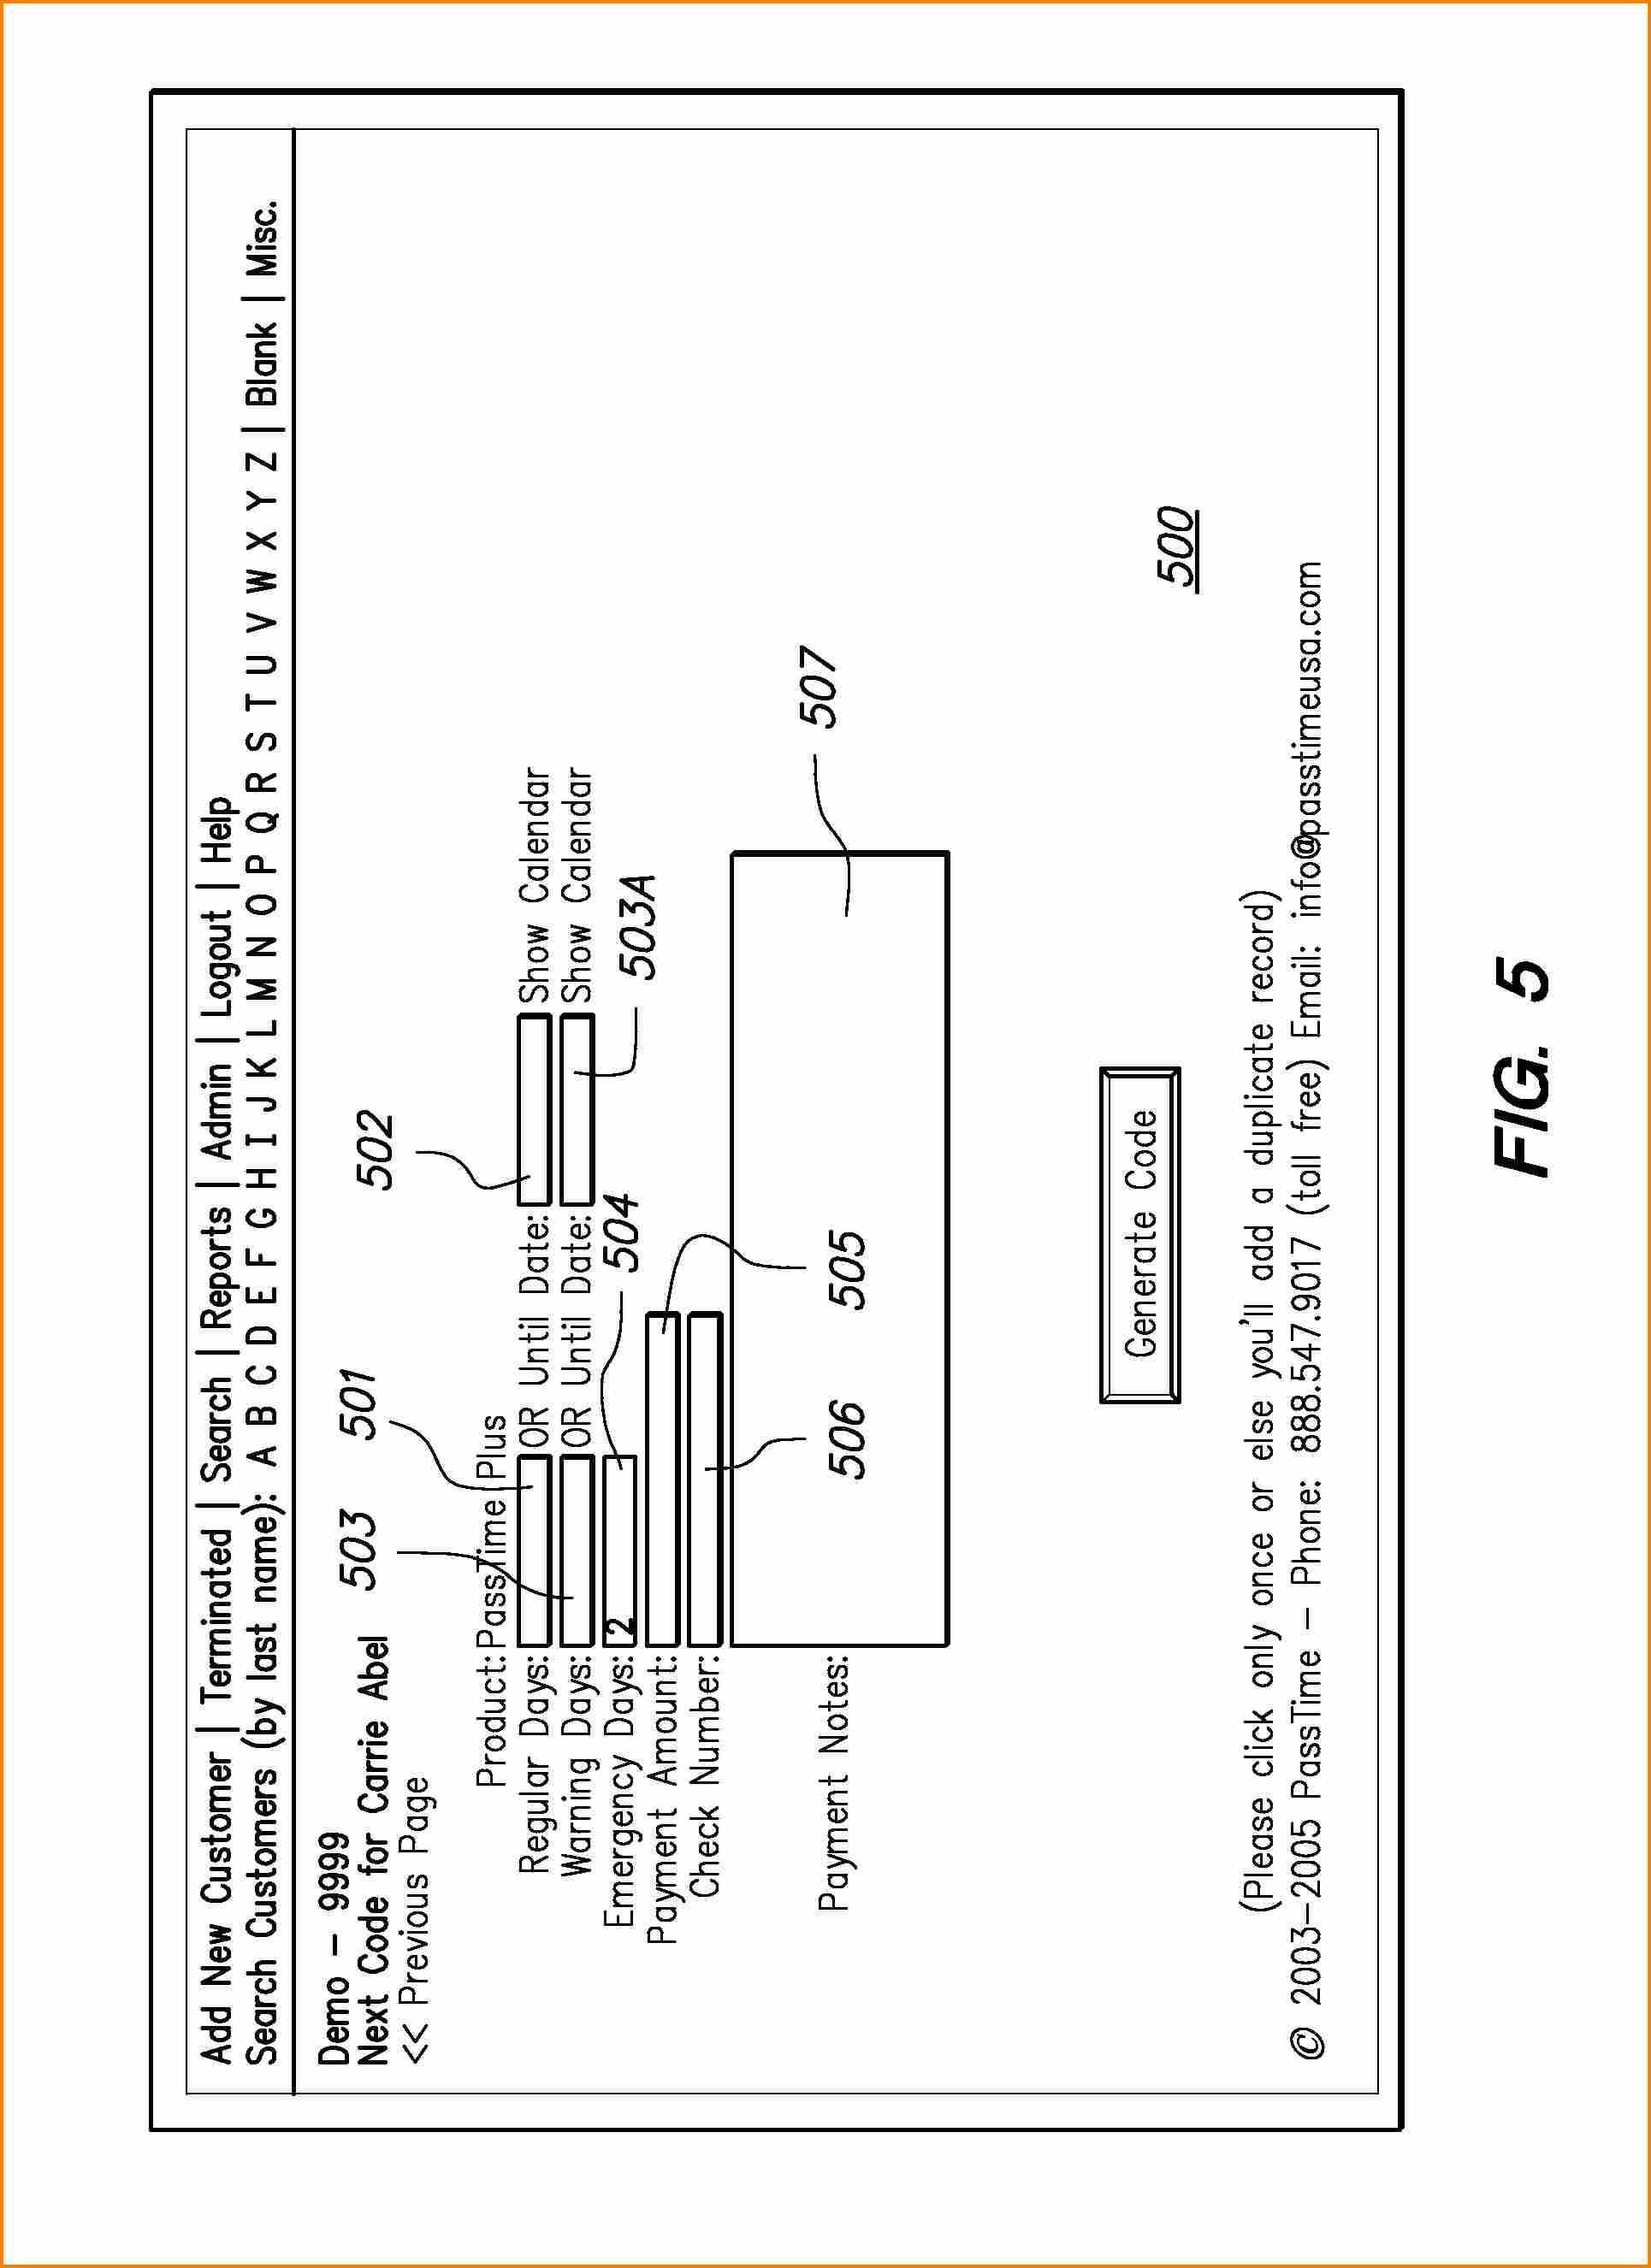 Ford 4630 Tractor Manual Wiring Diagram